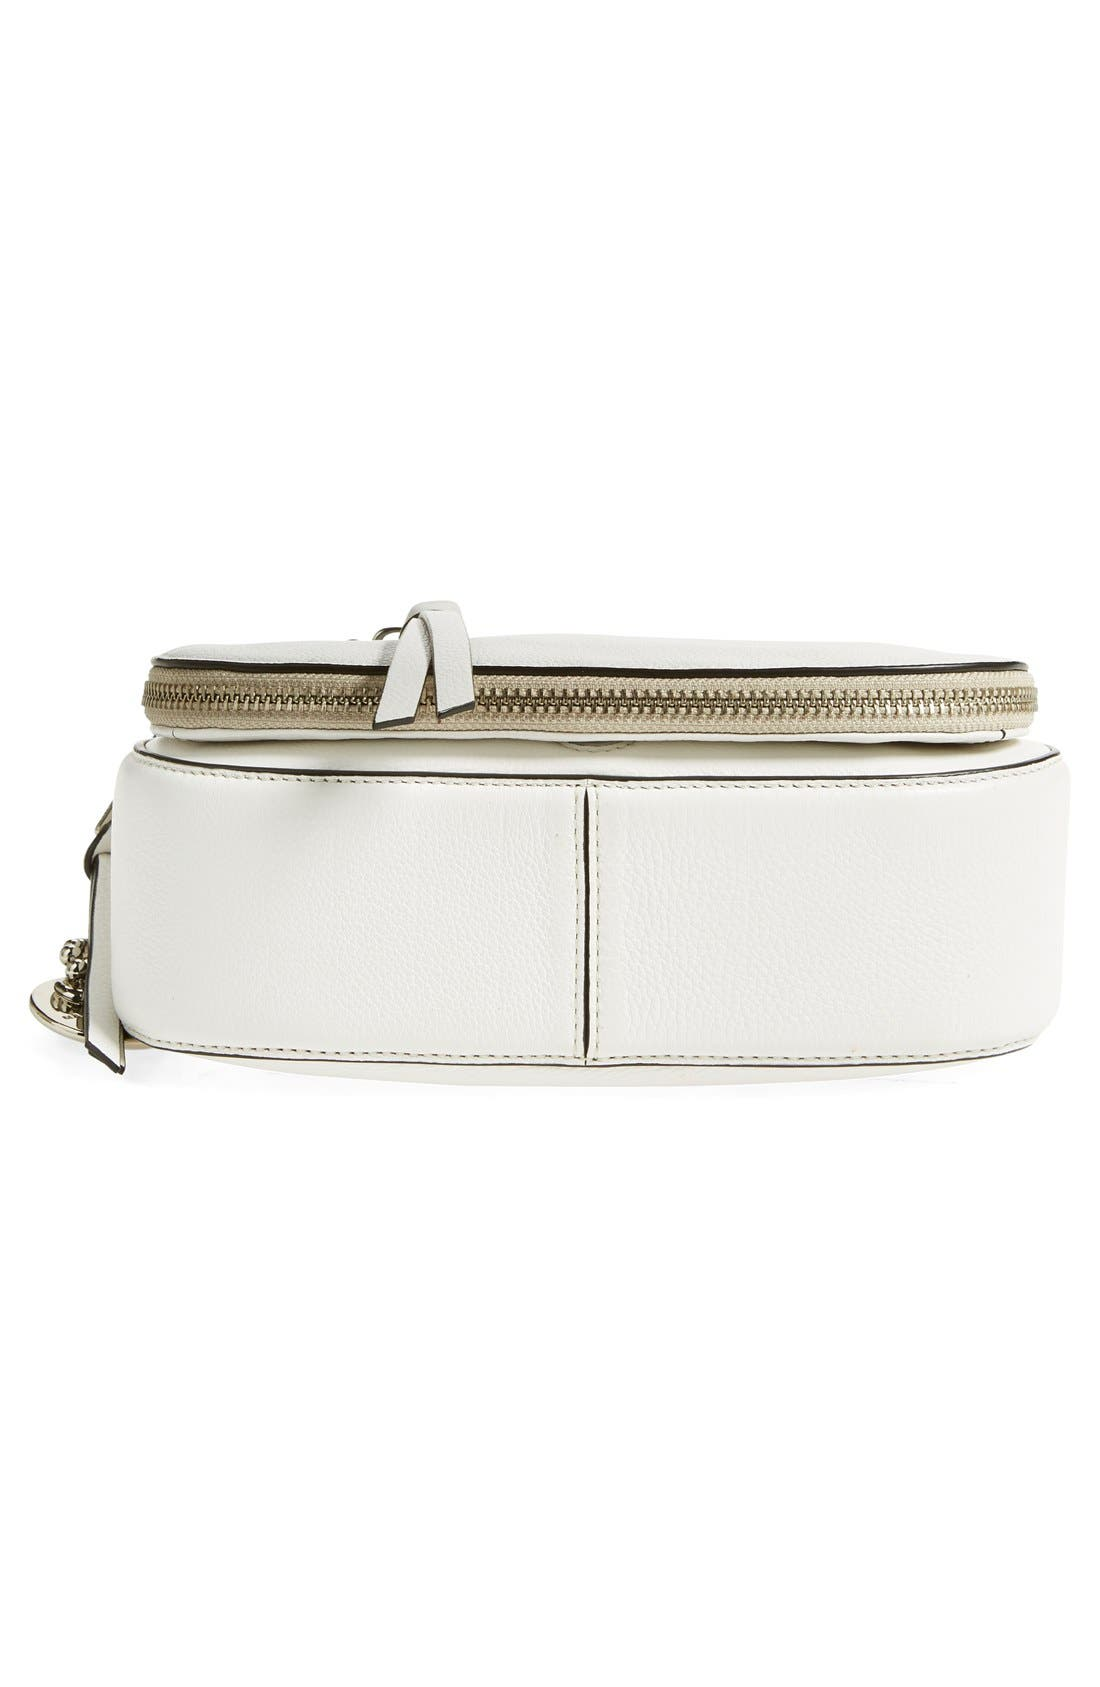 Small Recruit Nomad Pebbled Leather Crossbody Bag,                             Alternate thumbnail 79, color,